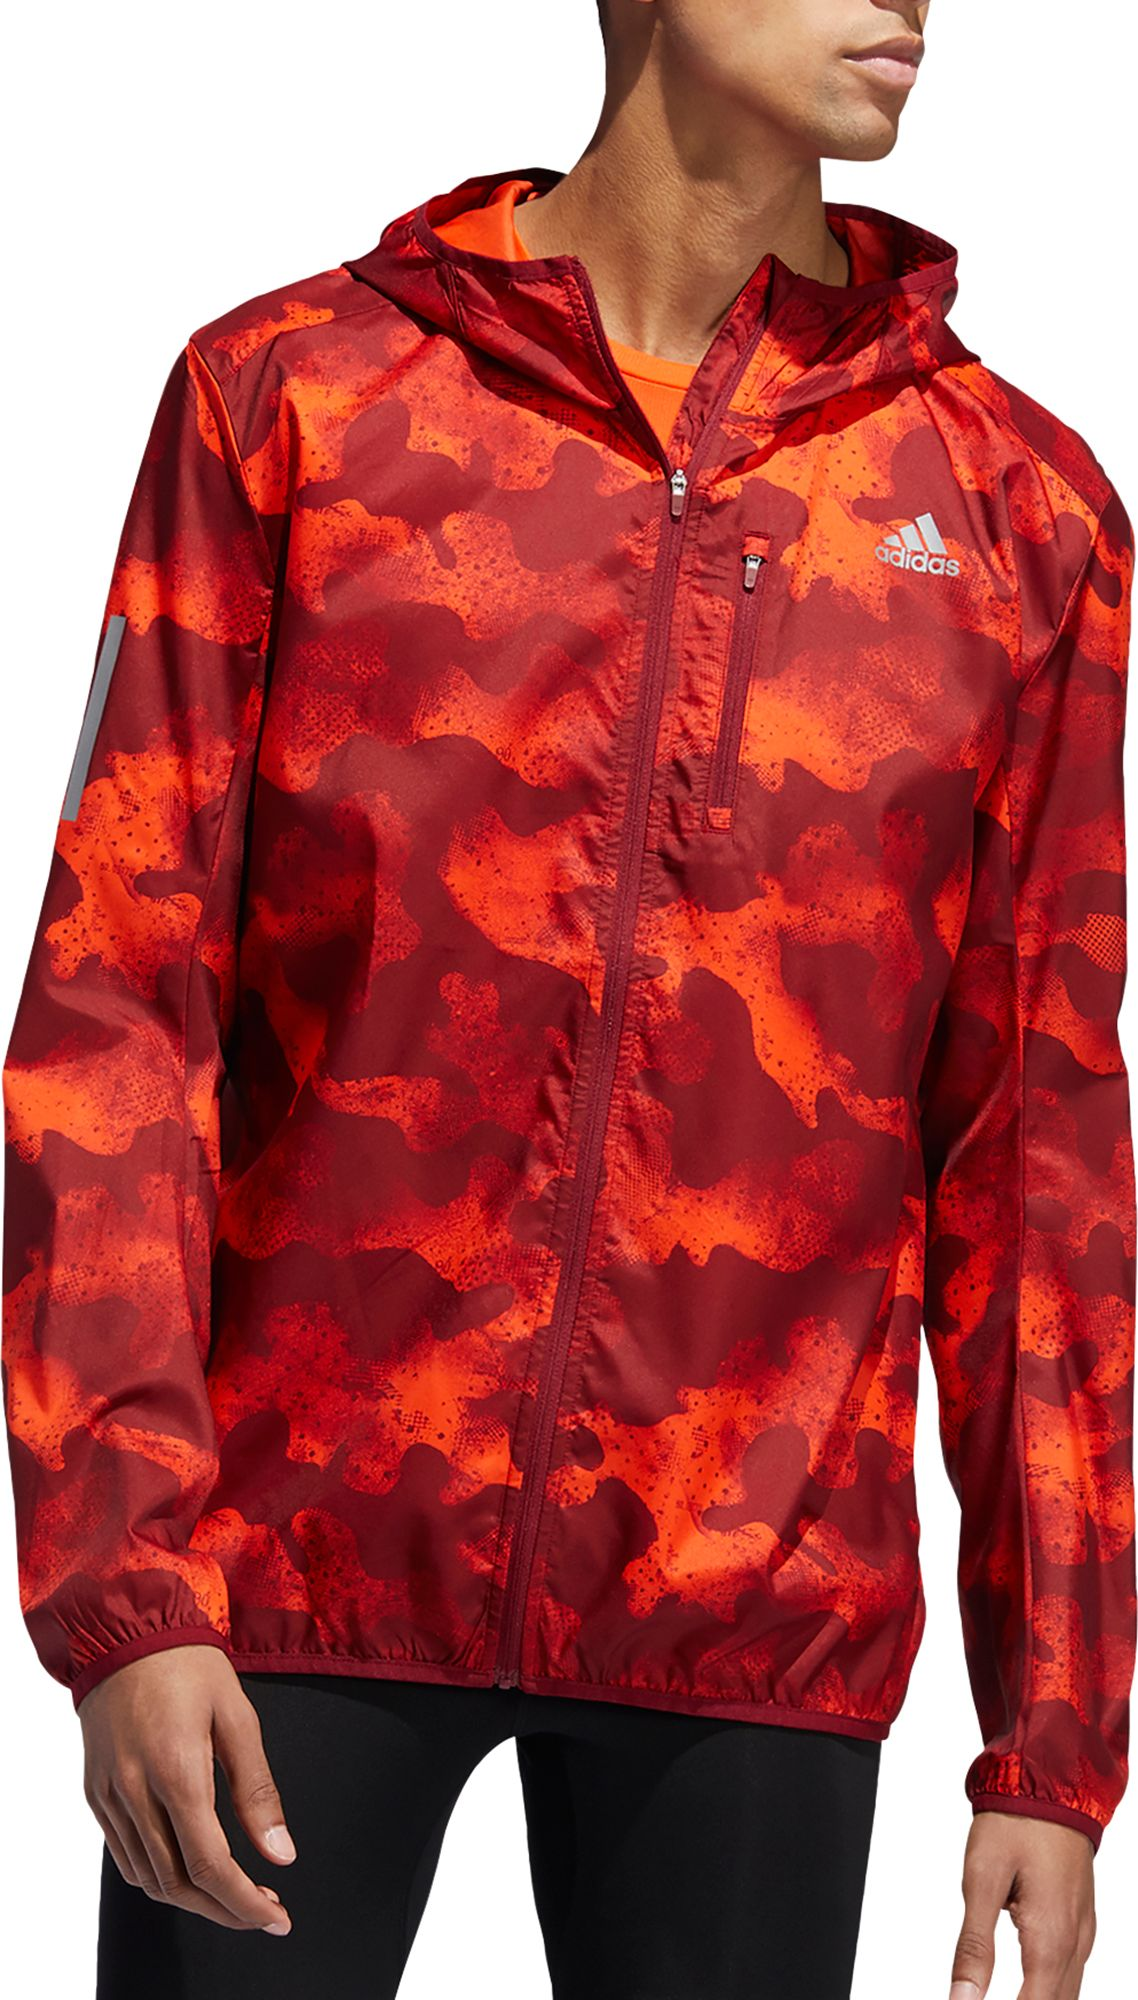 adidas Men's Own The Run Camouflage Running Jacket, Small, Activ Org/act Mrn/col Bur